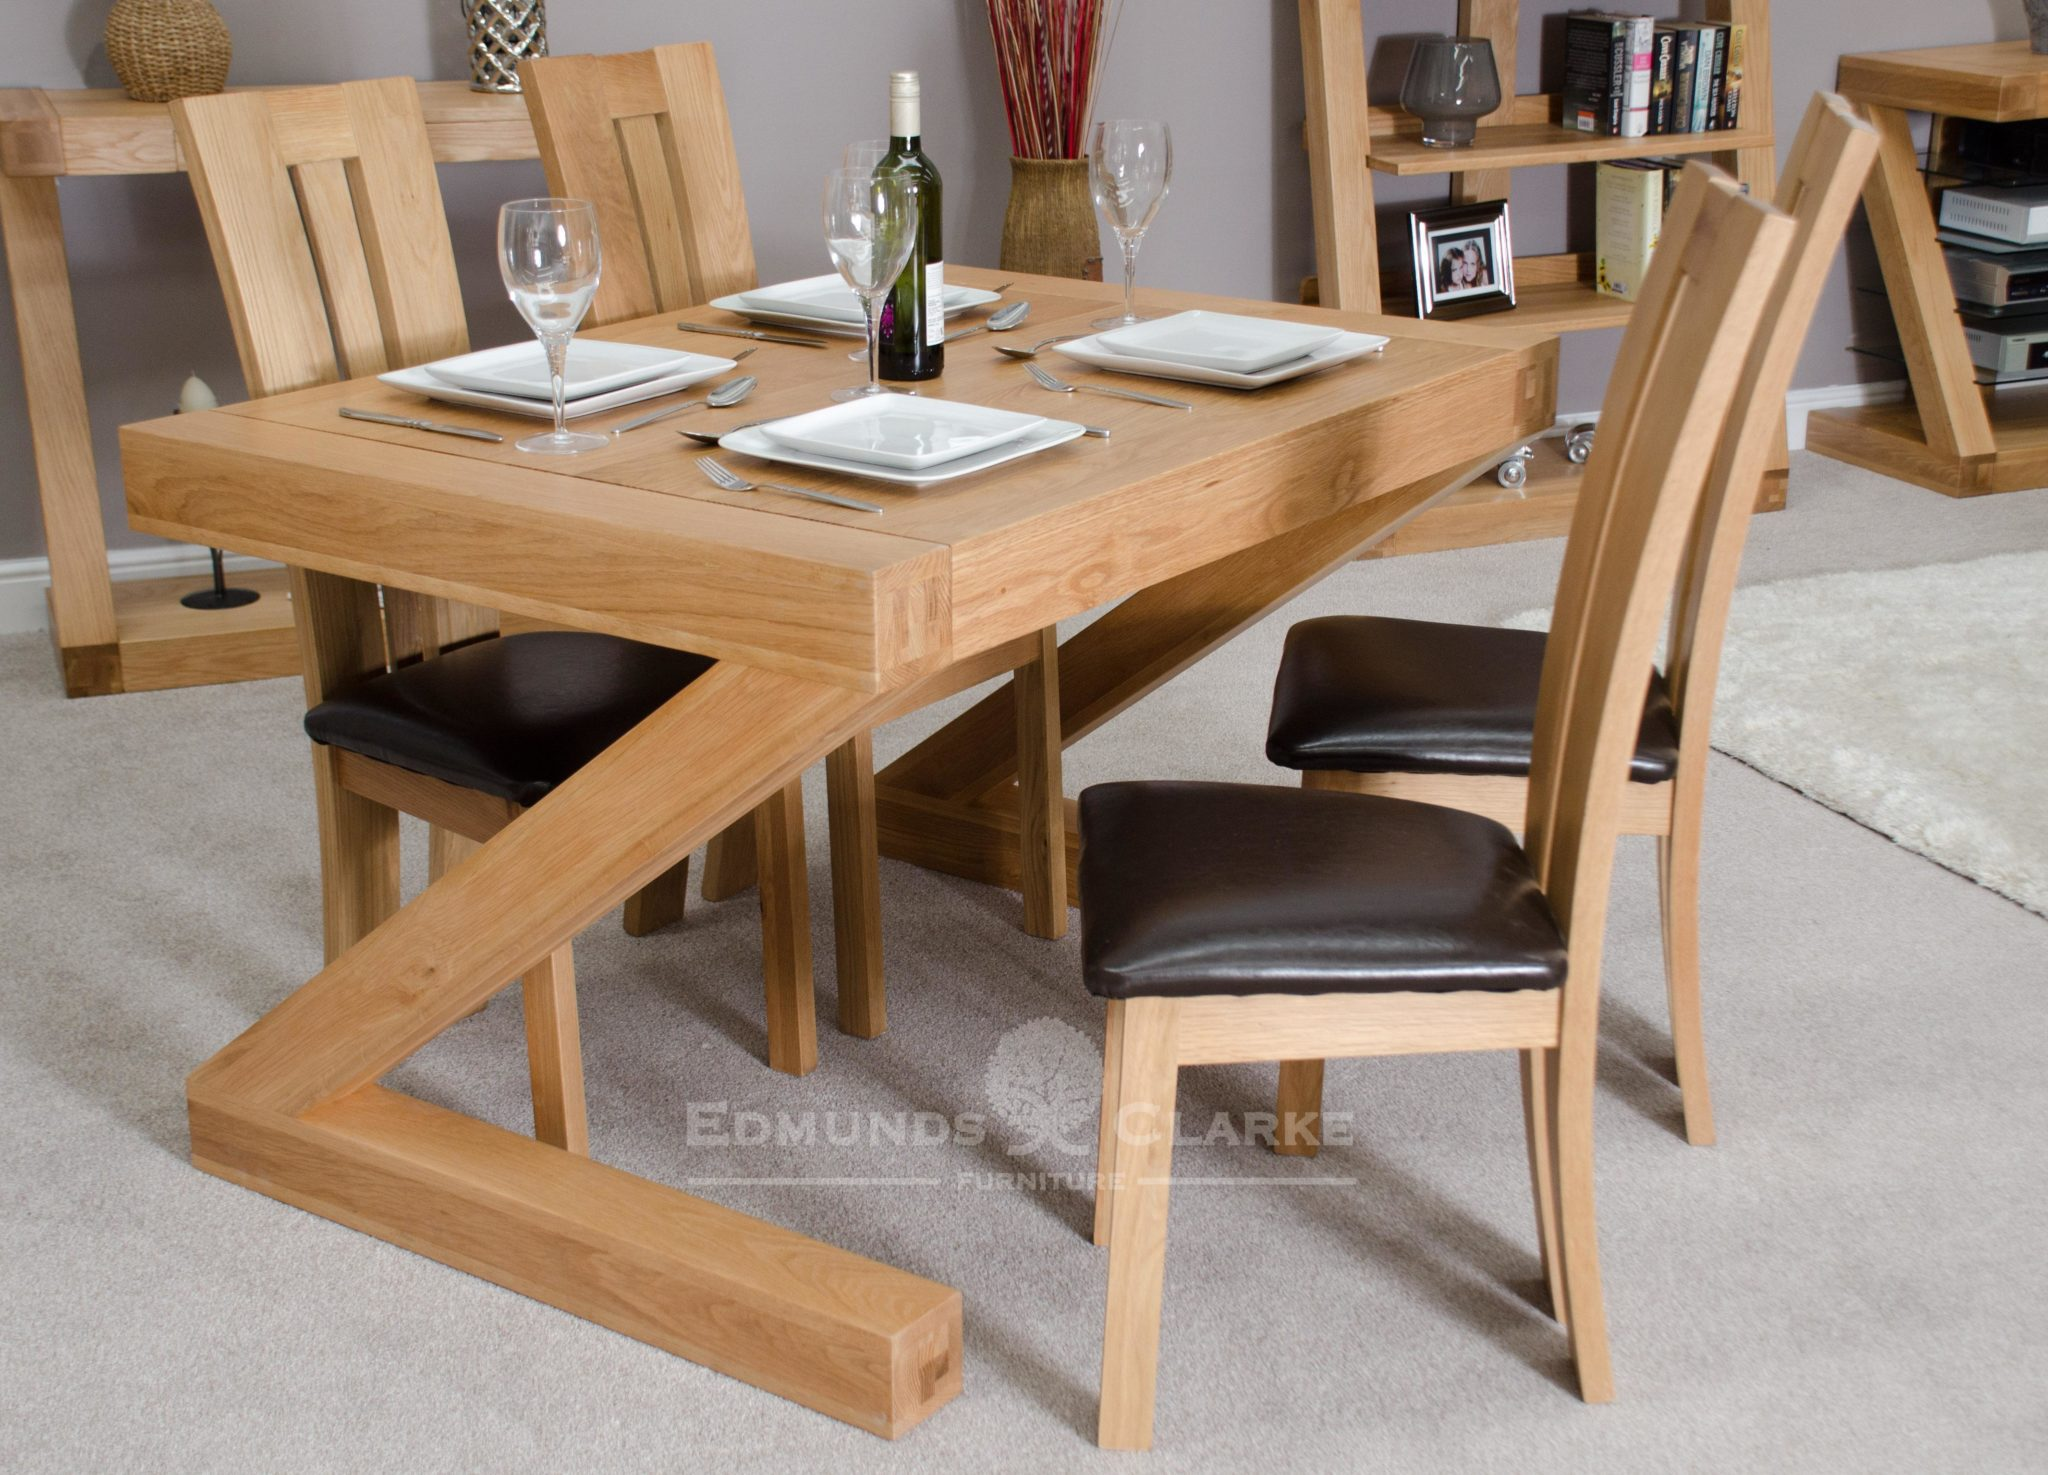 Dining table 4' x 3' solid oak designed in the shape of a Z Z4x3T